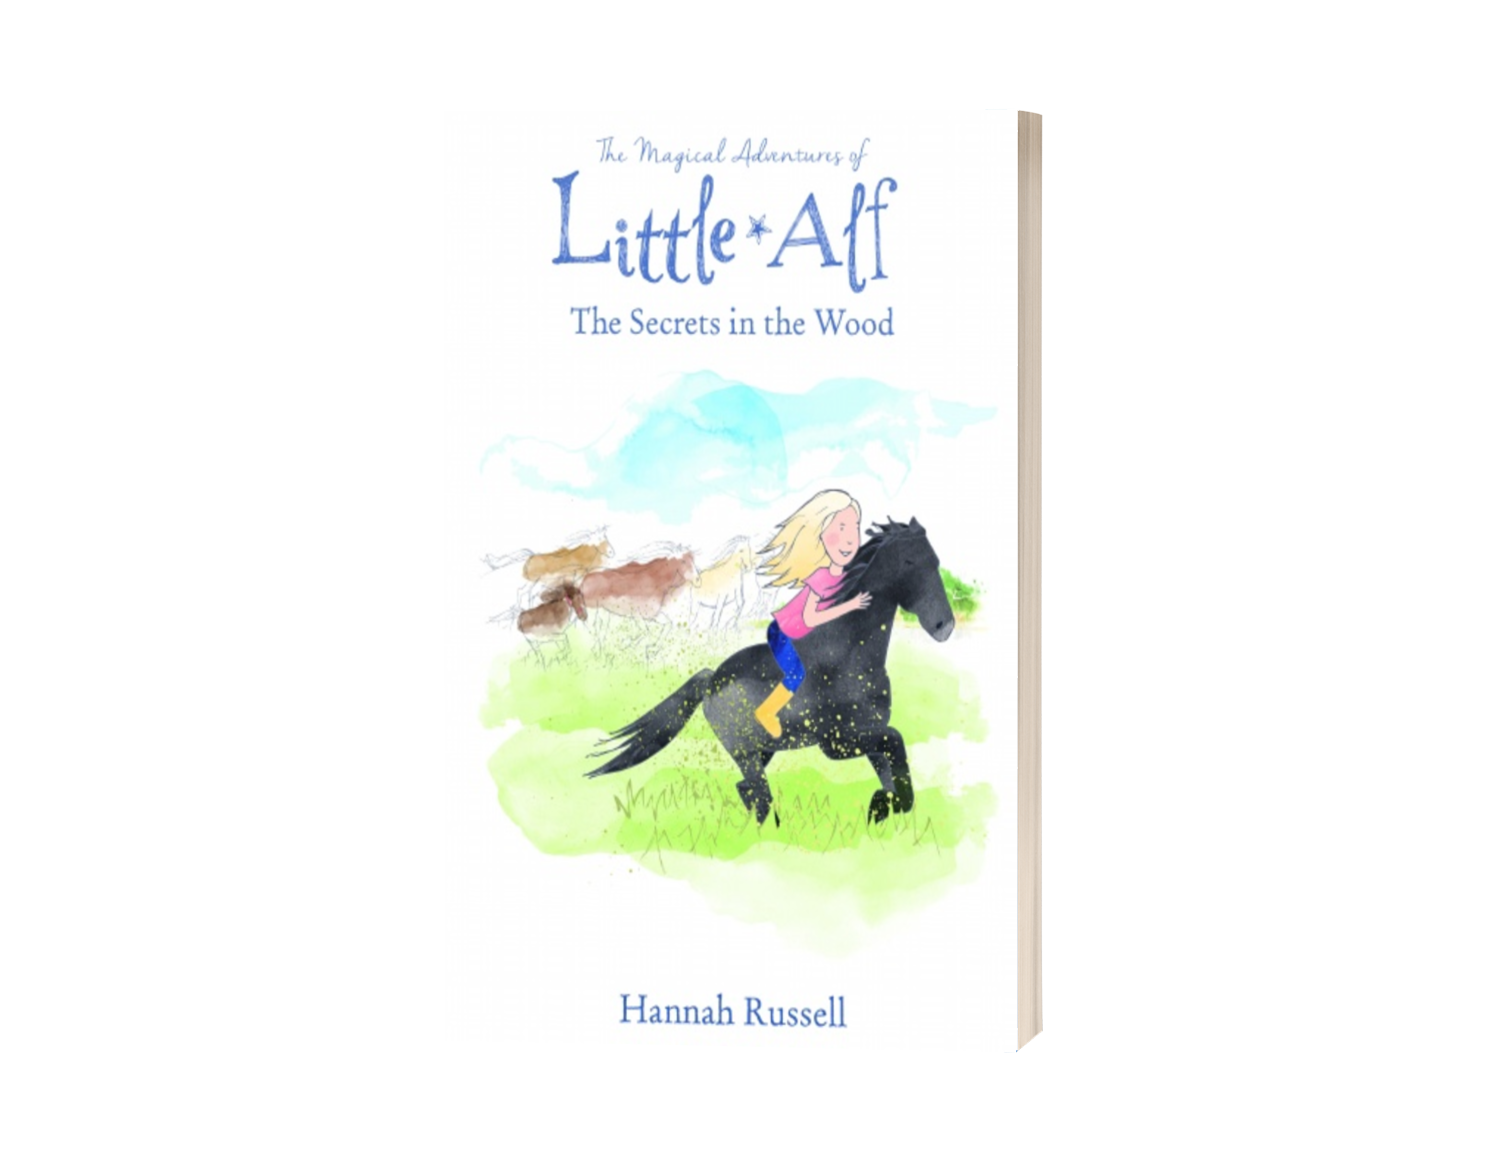 The Magical Adventure of Little Alf - The Secrets in the wood